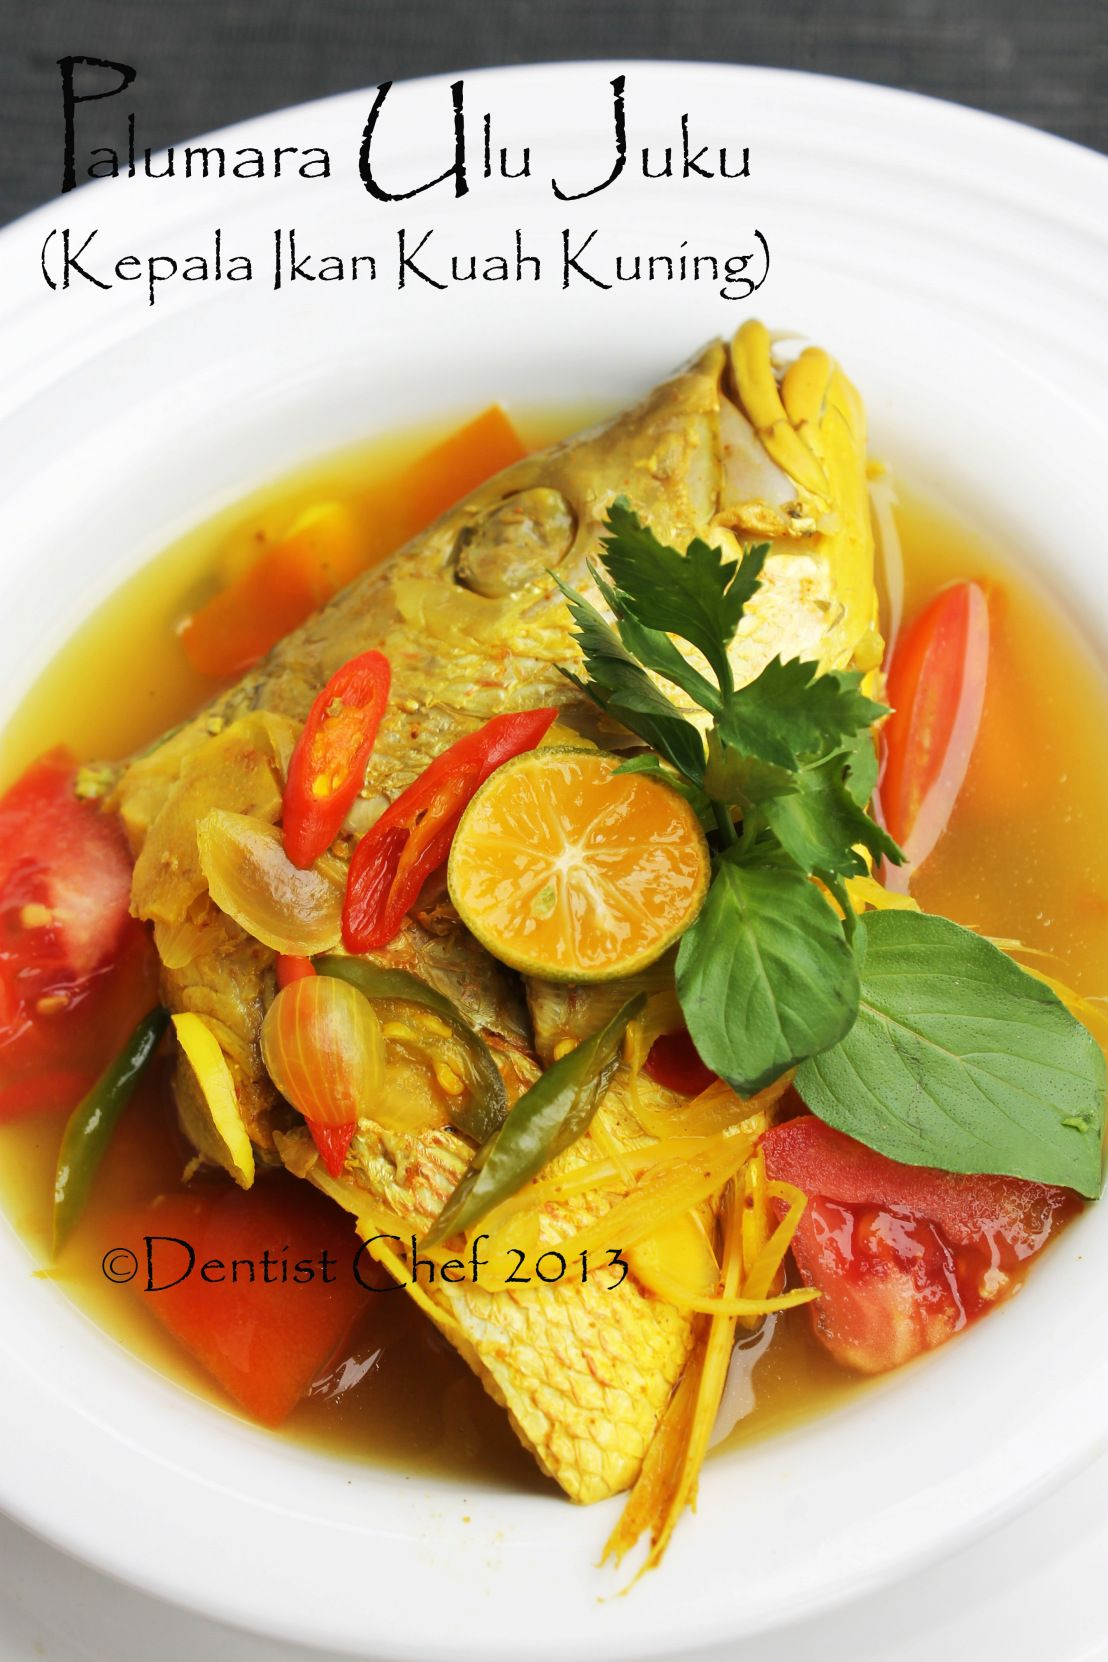 Resep Palumara Ulu Juku Spicy Red Snapper Fish Soup Recipe With Tomato Chilli Tamarind Lemongrass And Turmeric Based Seasoning Soup Recipes Soup Dish Tomato Recipes